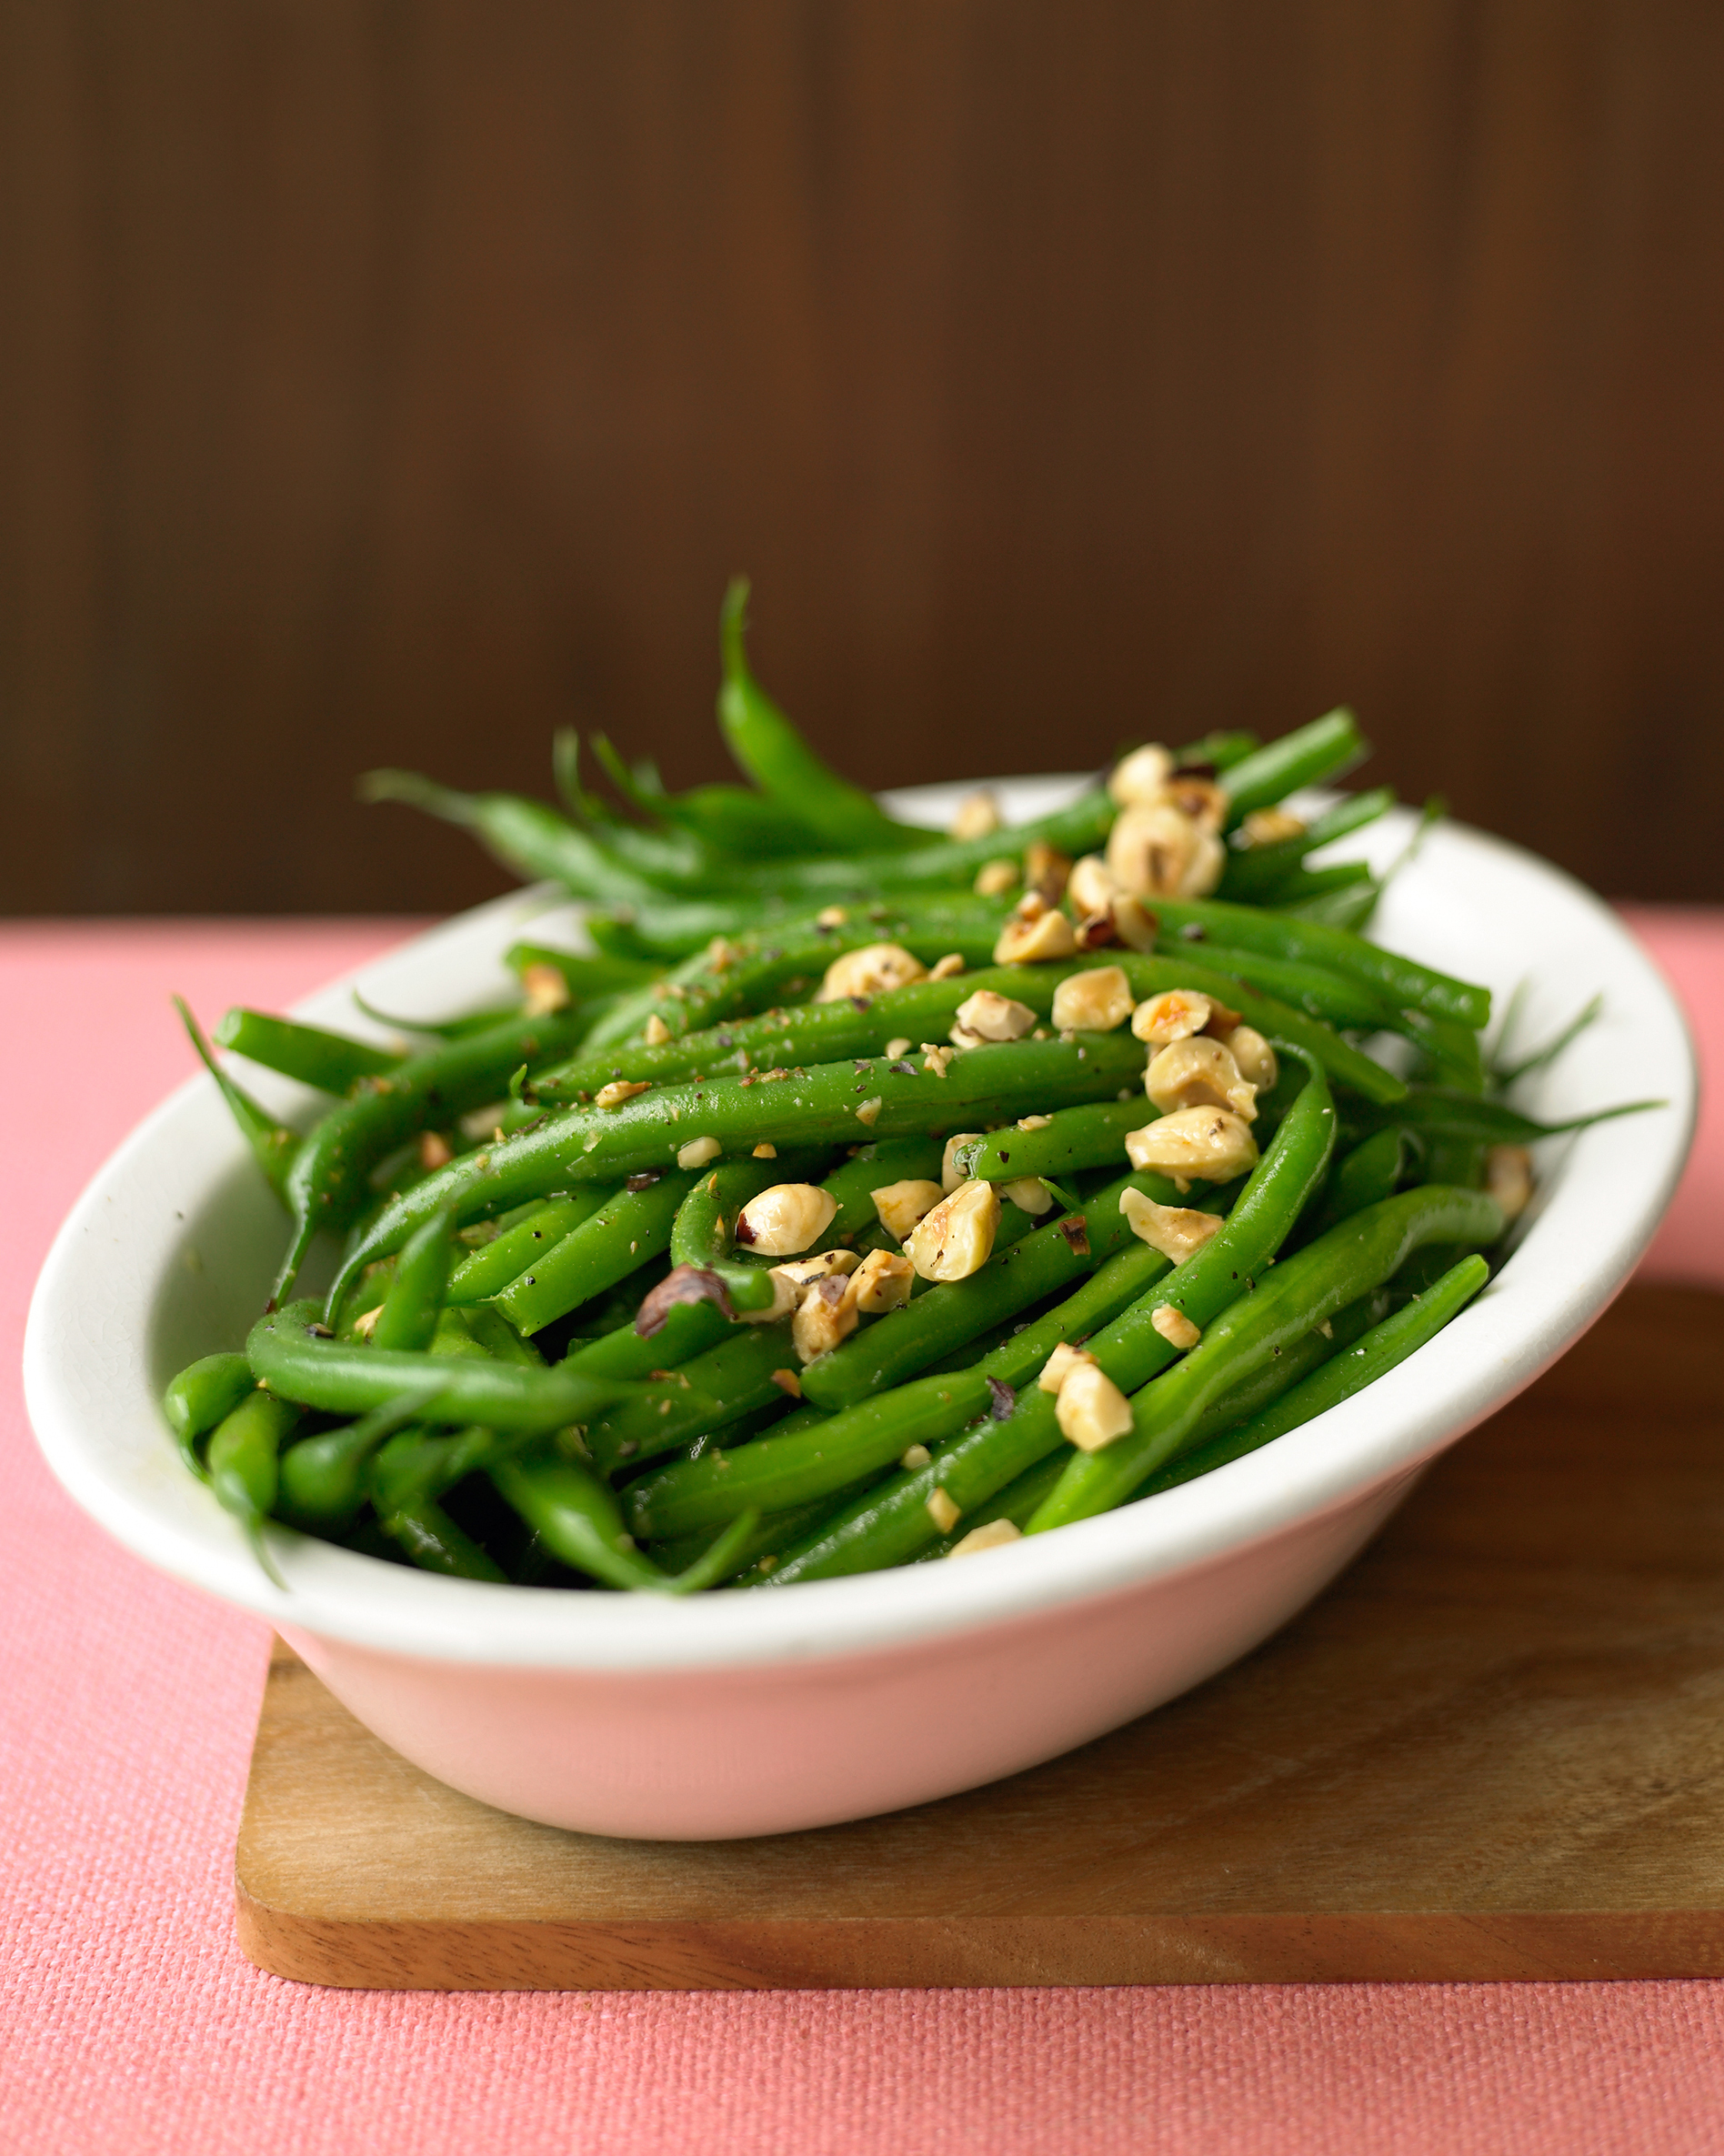 Marvelous Microwave Steamed Garlic Green Beans Martha Stewart Caraccident5 Cool Chair Designs And Ideas Caraccident5Info